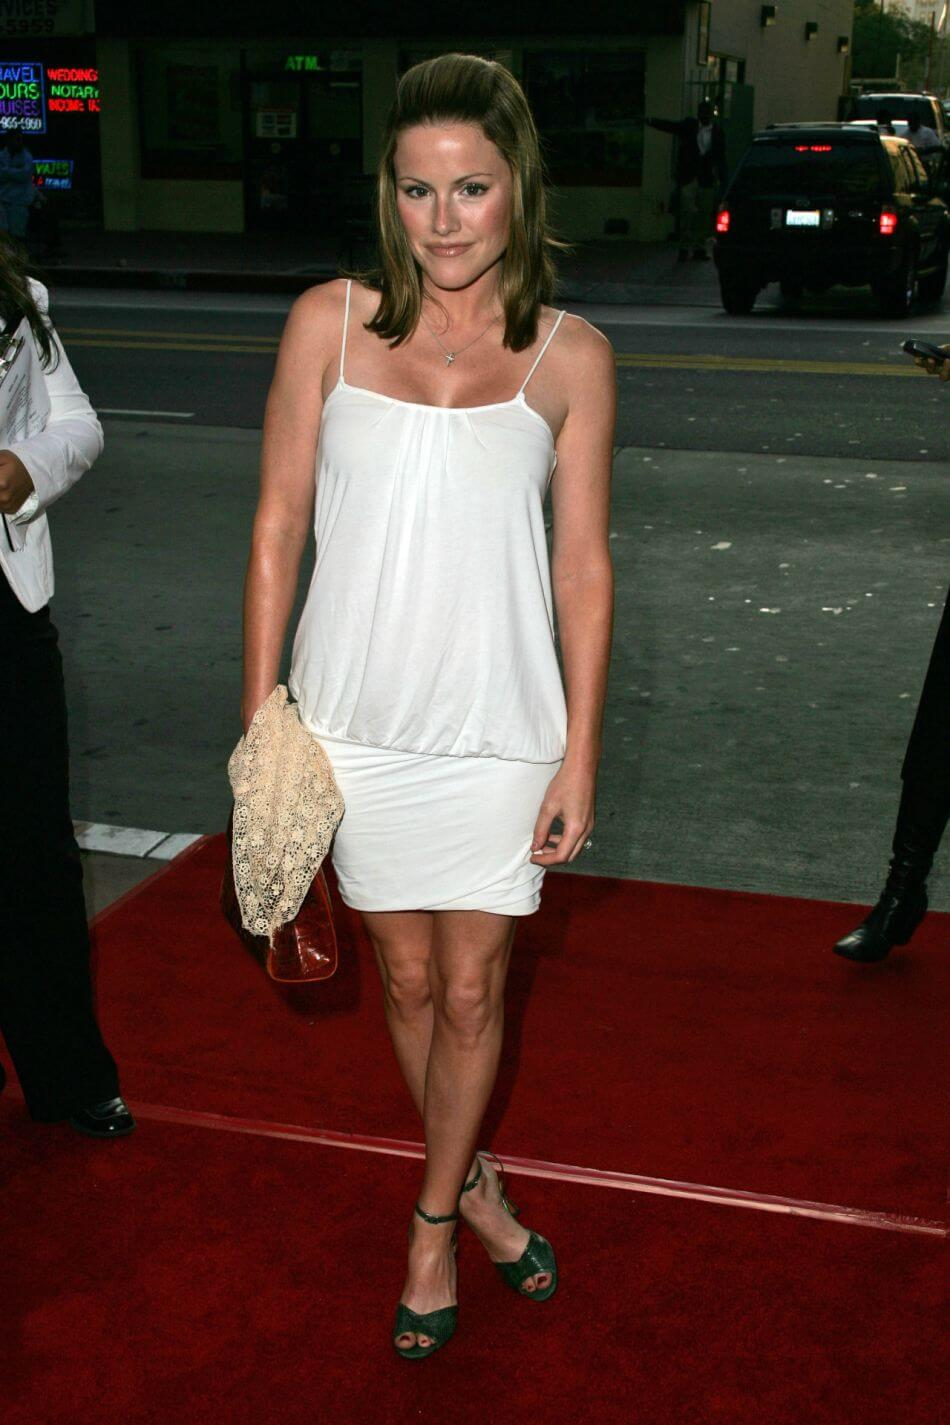 Kathleen robertson hot thank for